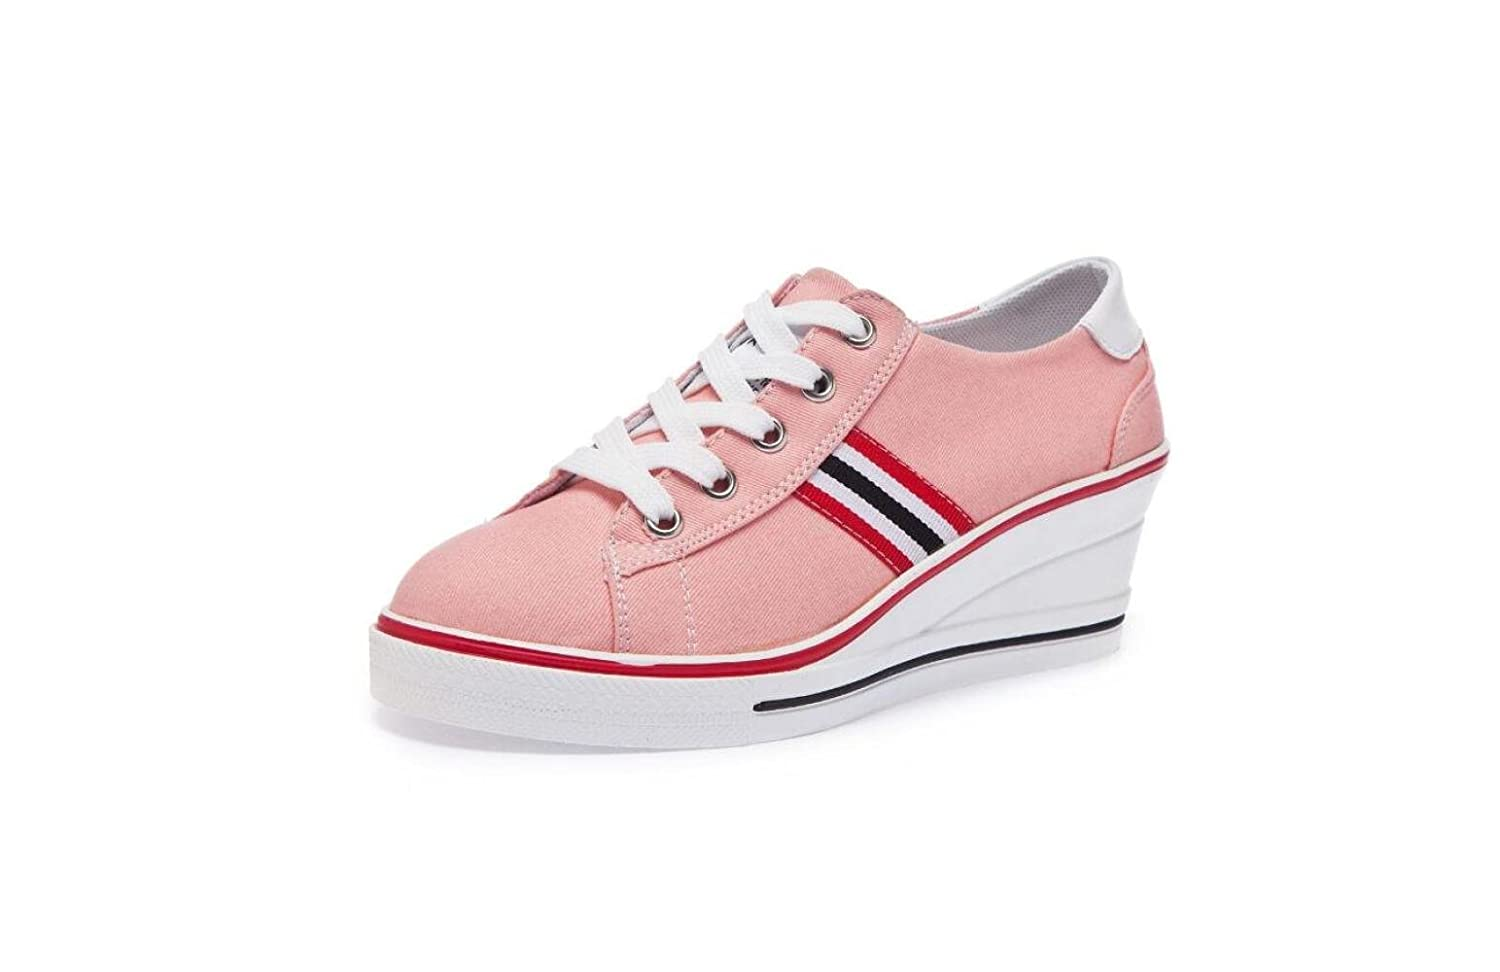 Femmes Fond Lace Talon épais Plate-Forme Chaussures Bas-Haut Wedge up Talon Toile Chaussures Baskets Casual Lace up Chaussures Pink 33ec7e7 - reprogrammed.space